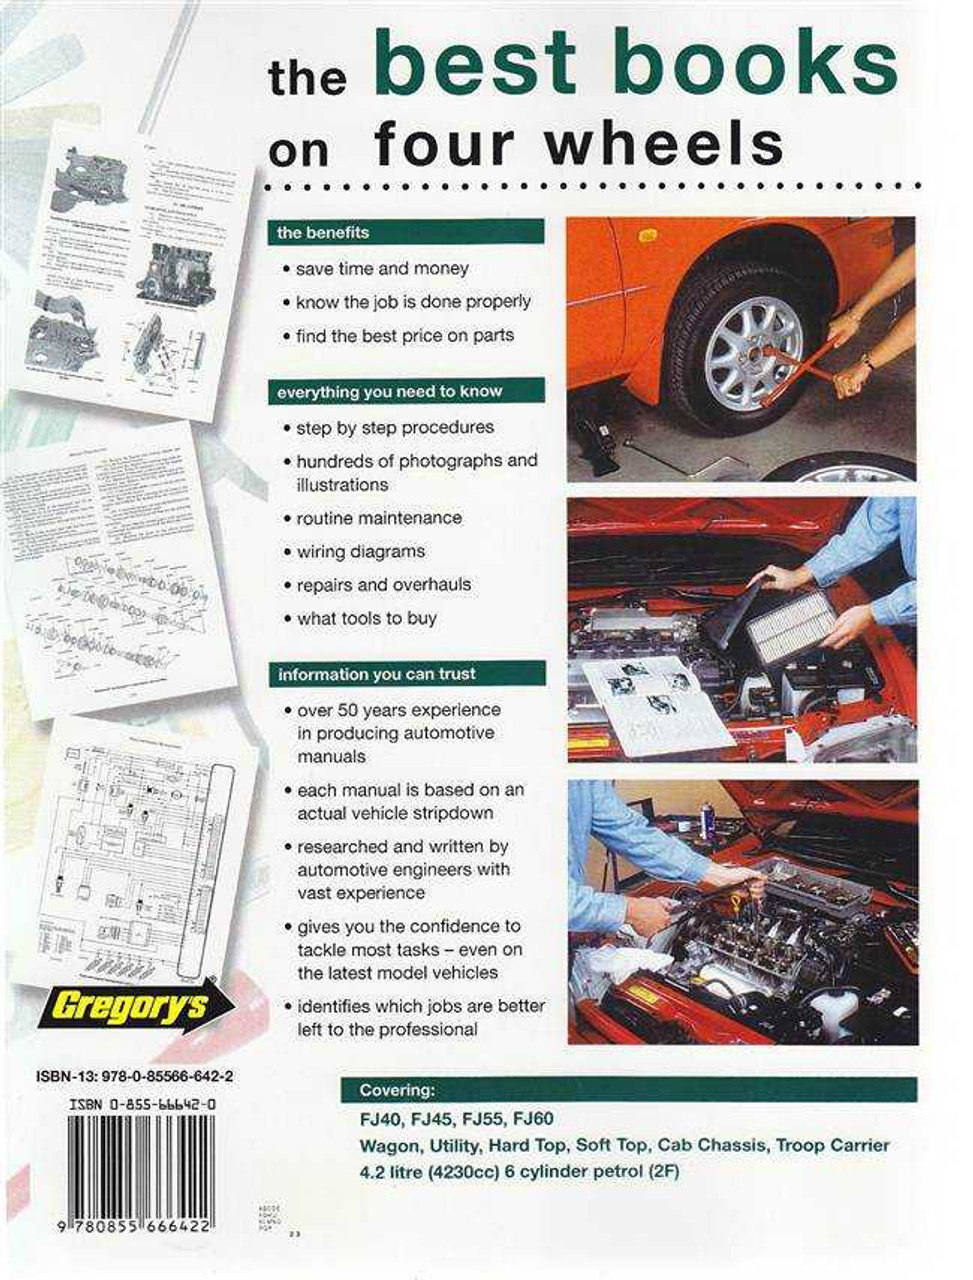 Toyota Land Cruiser Fj Series Fj40 Fj45 Fj55 Fj60 1975 1984 Rhautomotobookshopau: Toyota Hardtop Land Cruiser Wiring Diagram At Gmaili.net